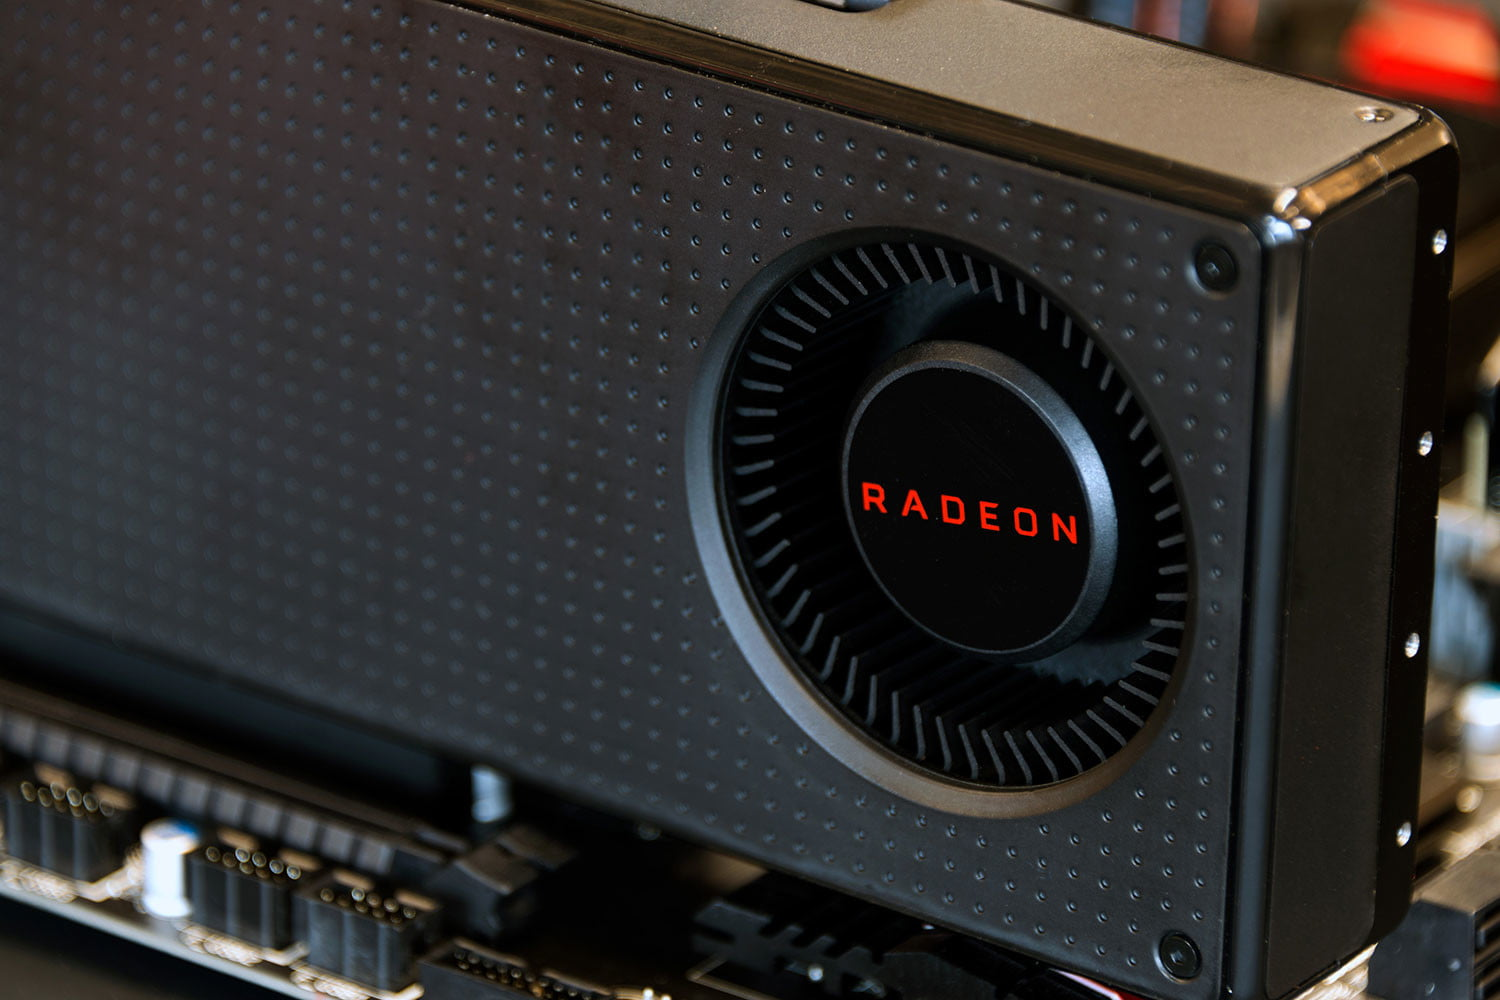 Do Some AMD Radeon RX 480 4GB Cards Really Have 8GB